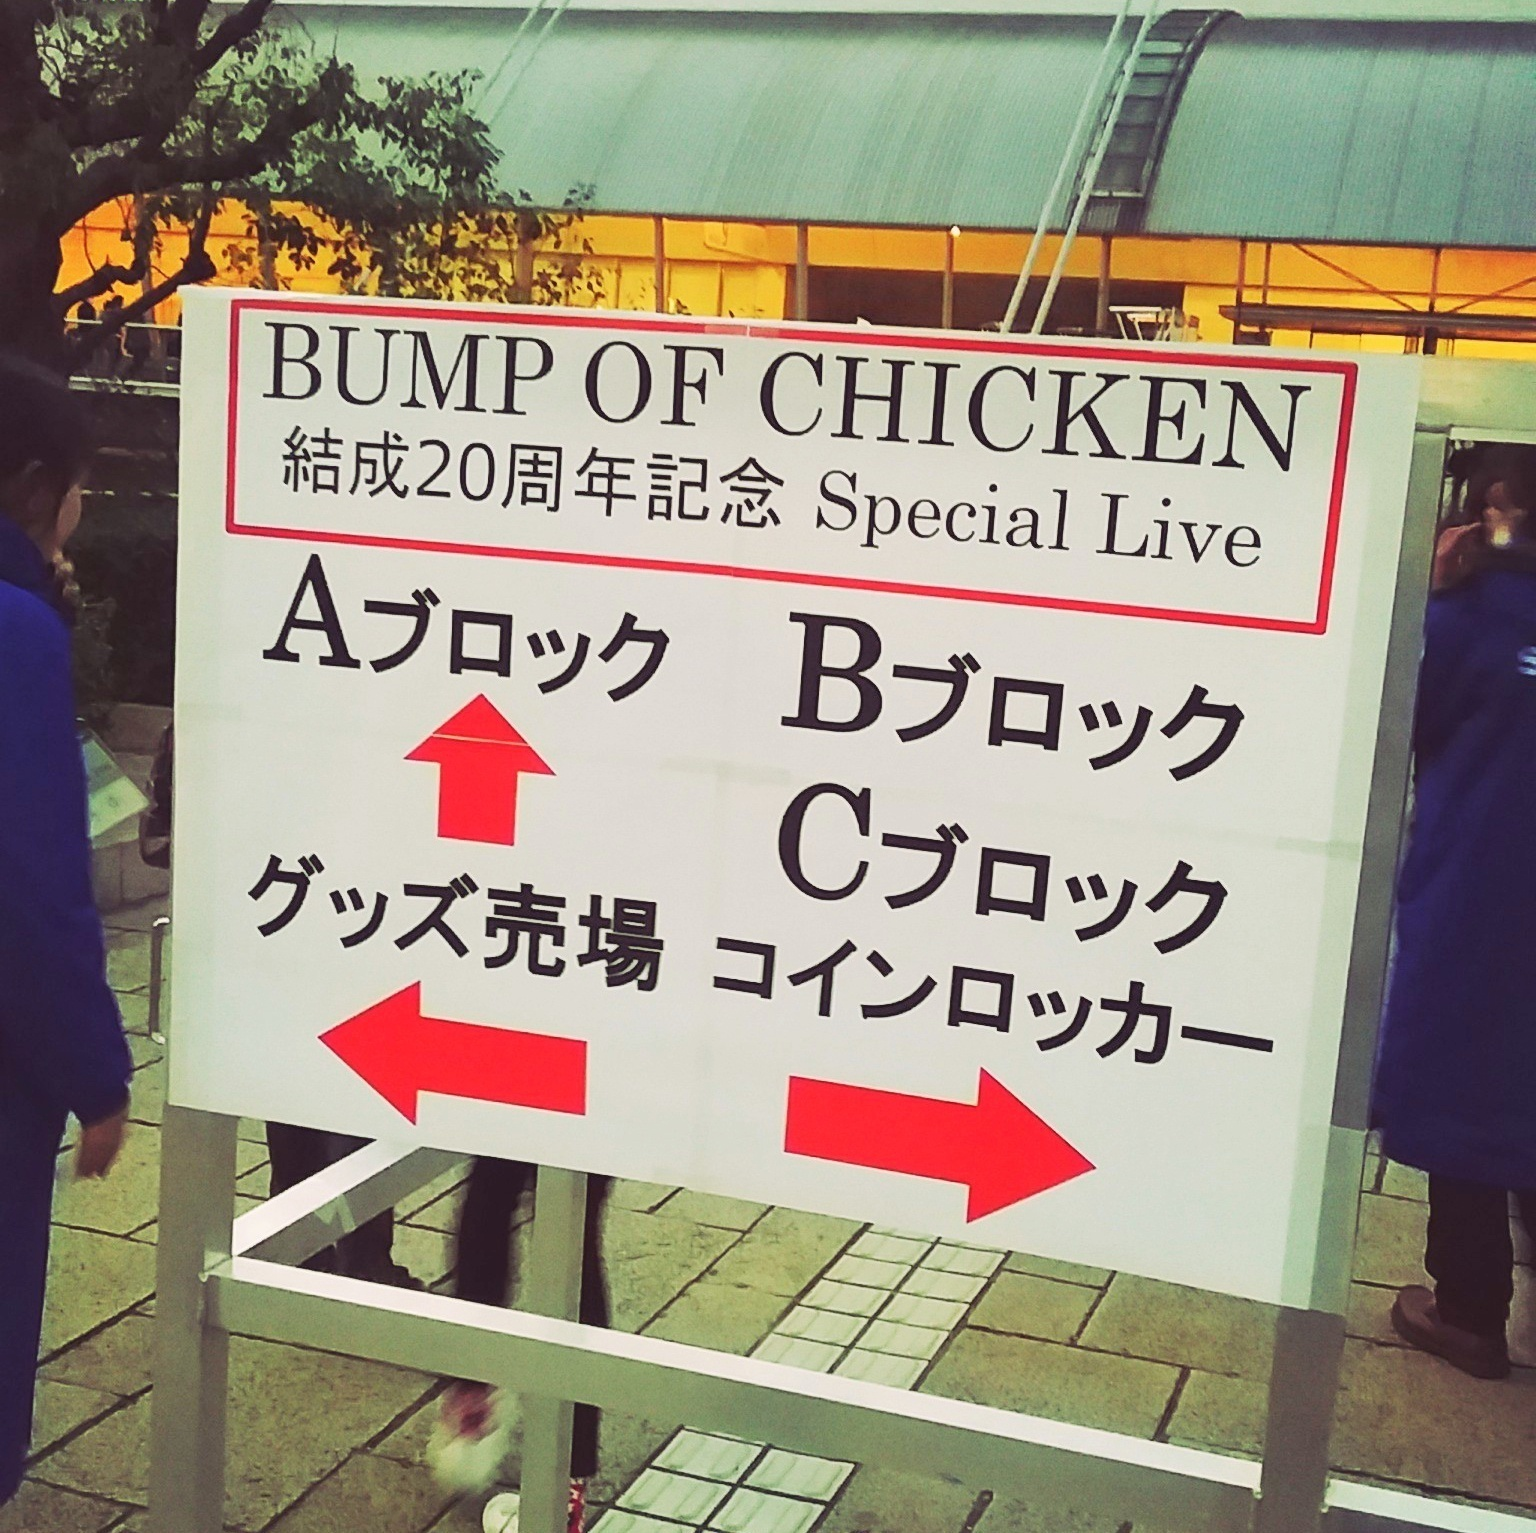 BUMP OF CHICKEN、結成20周年記念 Special Live 「20」に、来ました